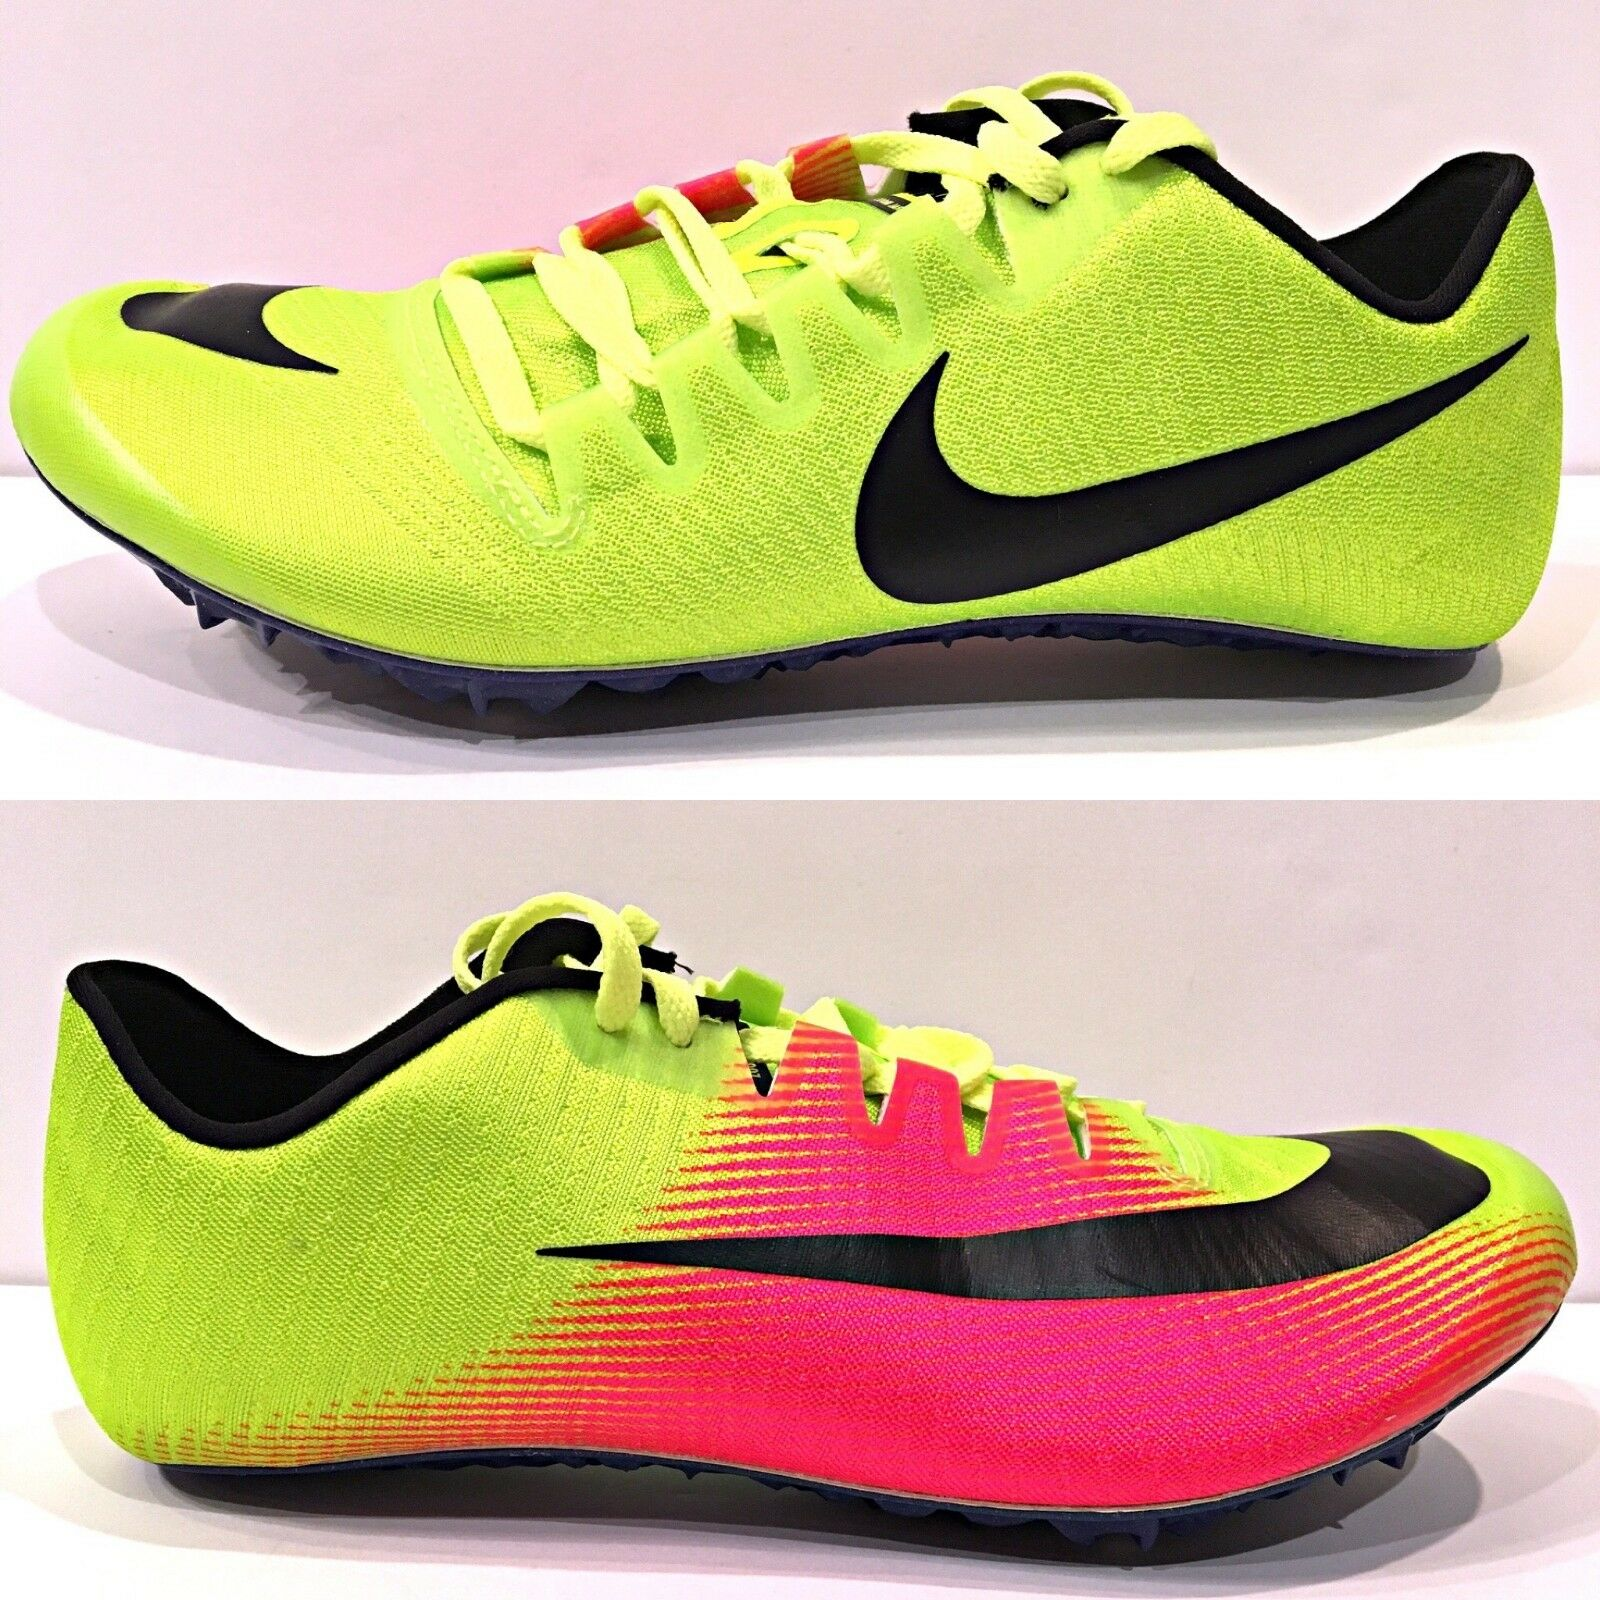 Nike Zoom Jay Fly 3 OC Olympic Rio Track & Field Spikes Men's Comfortable Cheap women's shoes women's shoes